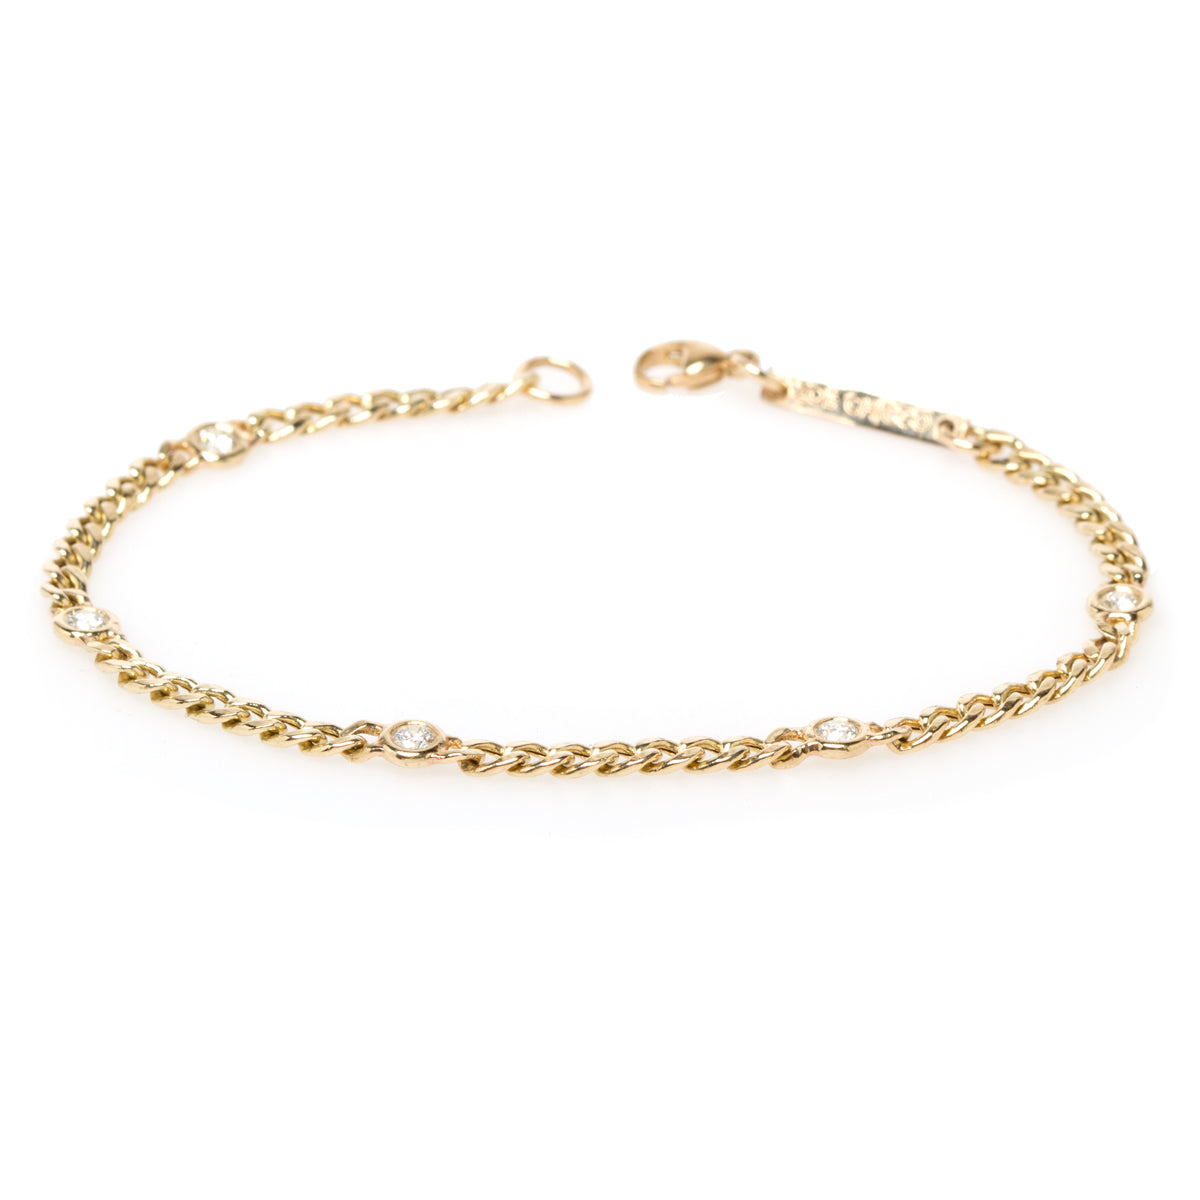 14k small curb chain bracelet with 5 floating diamonds